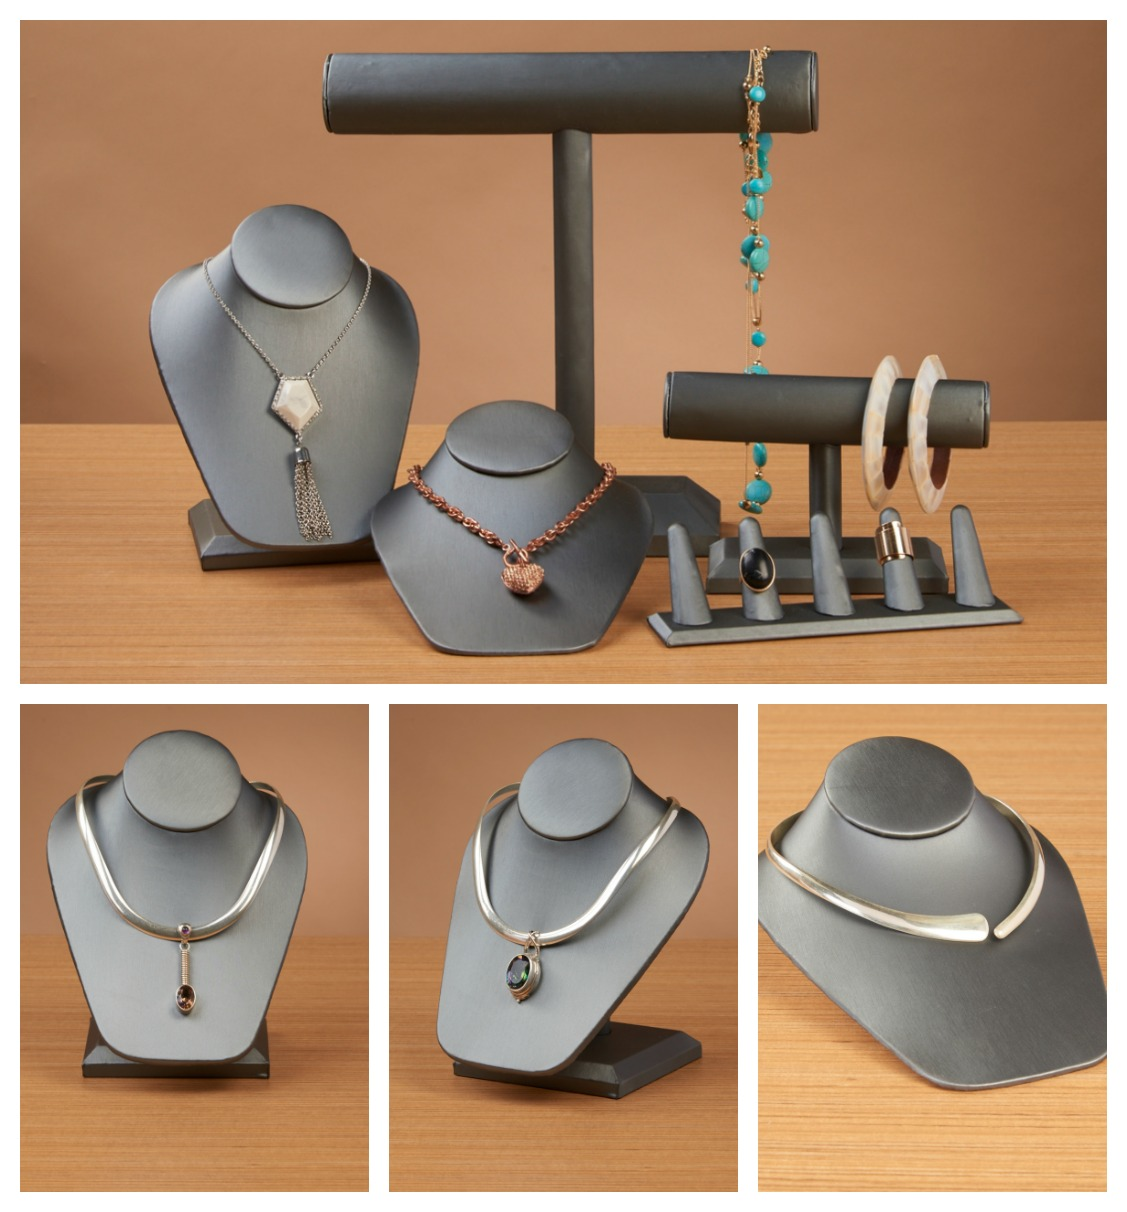 Grey jewelry displays set with holders for necklaces, racks for bracelets & necklaces, and holders for rings. A nice set for jewelry display ideas.